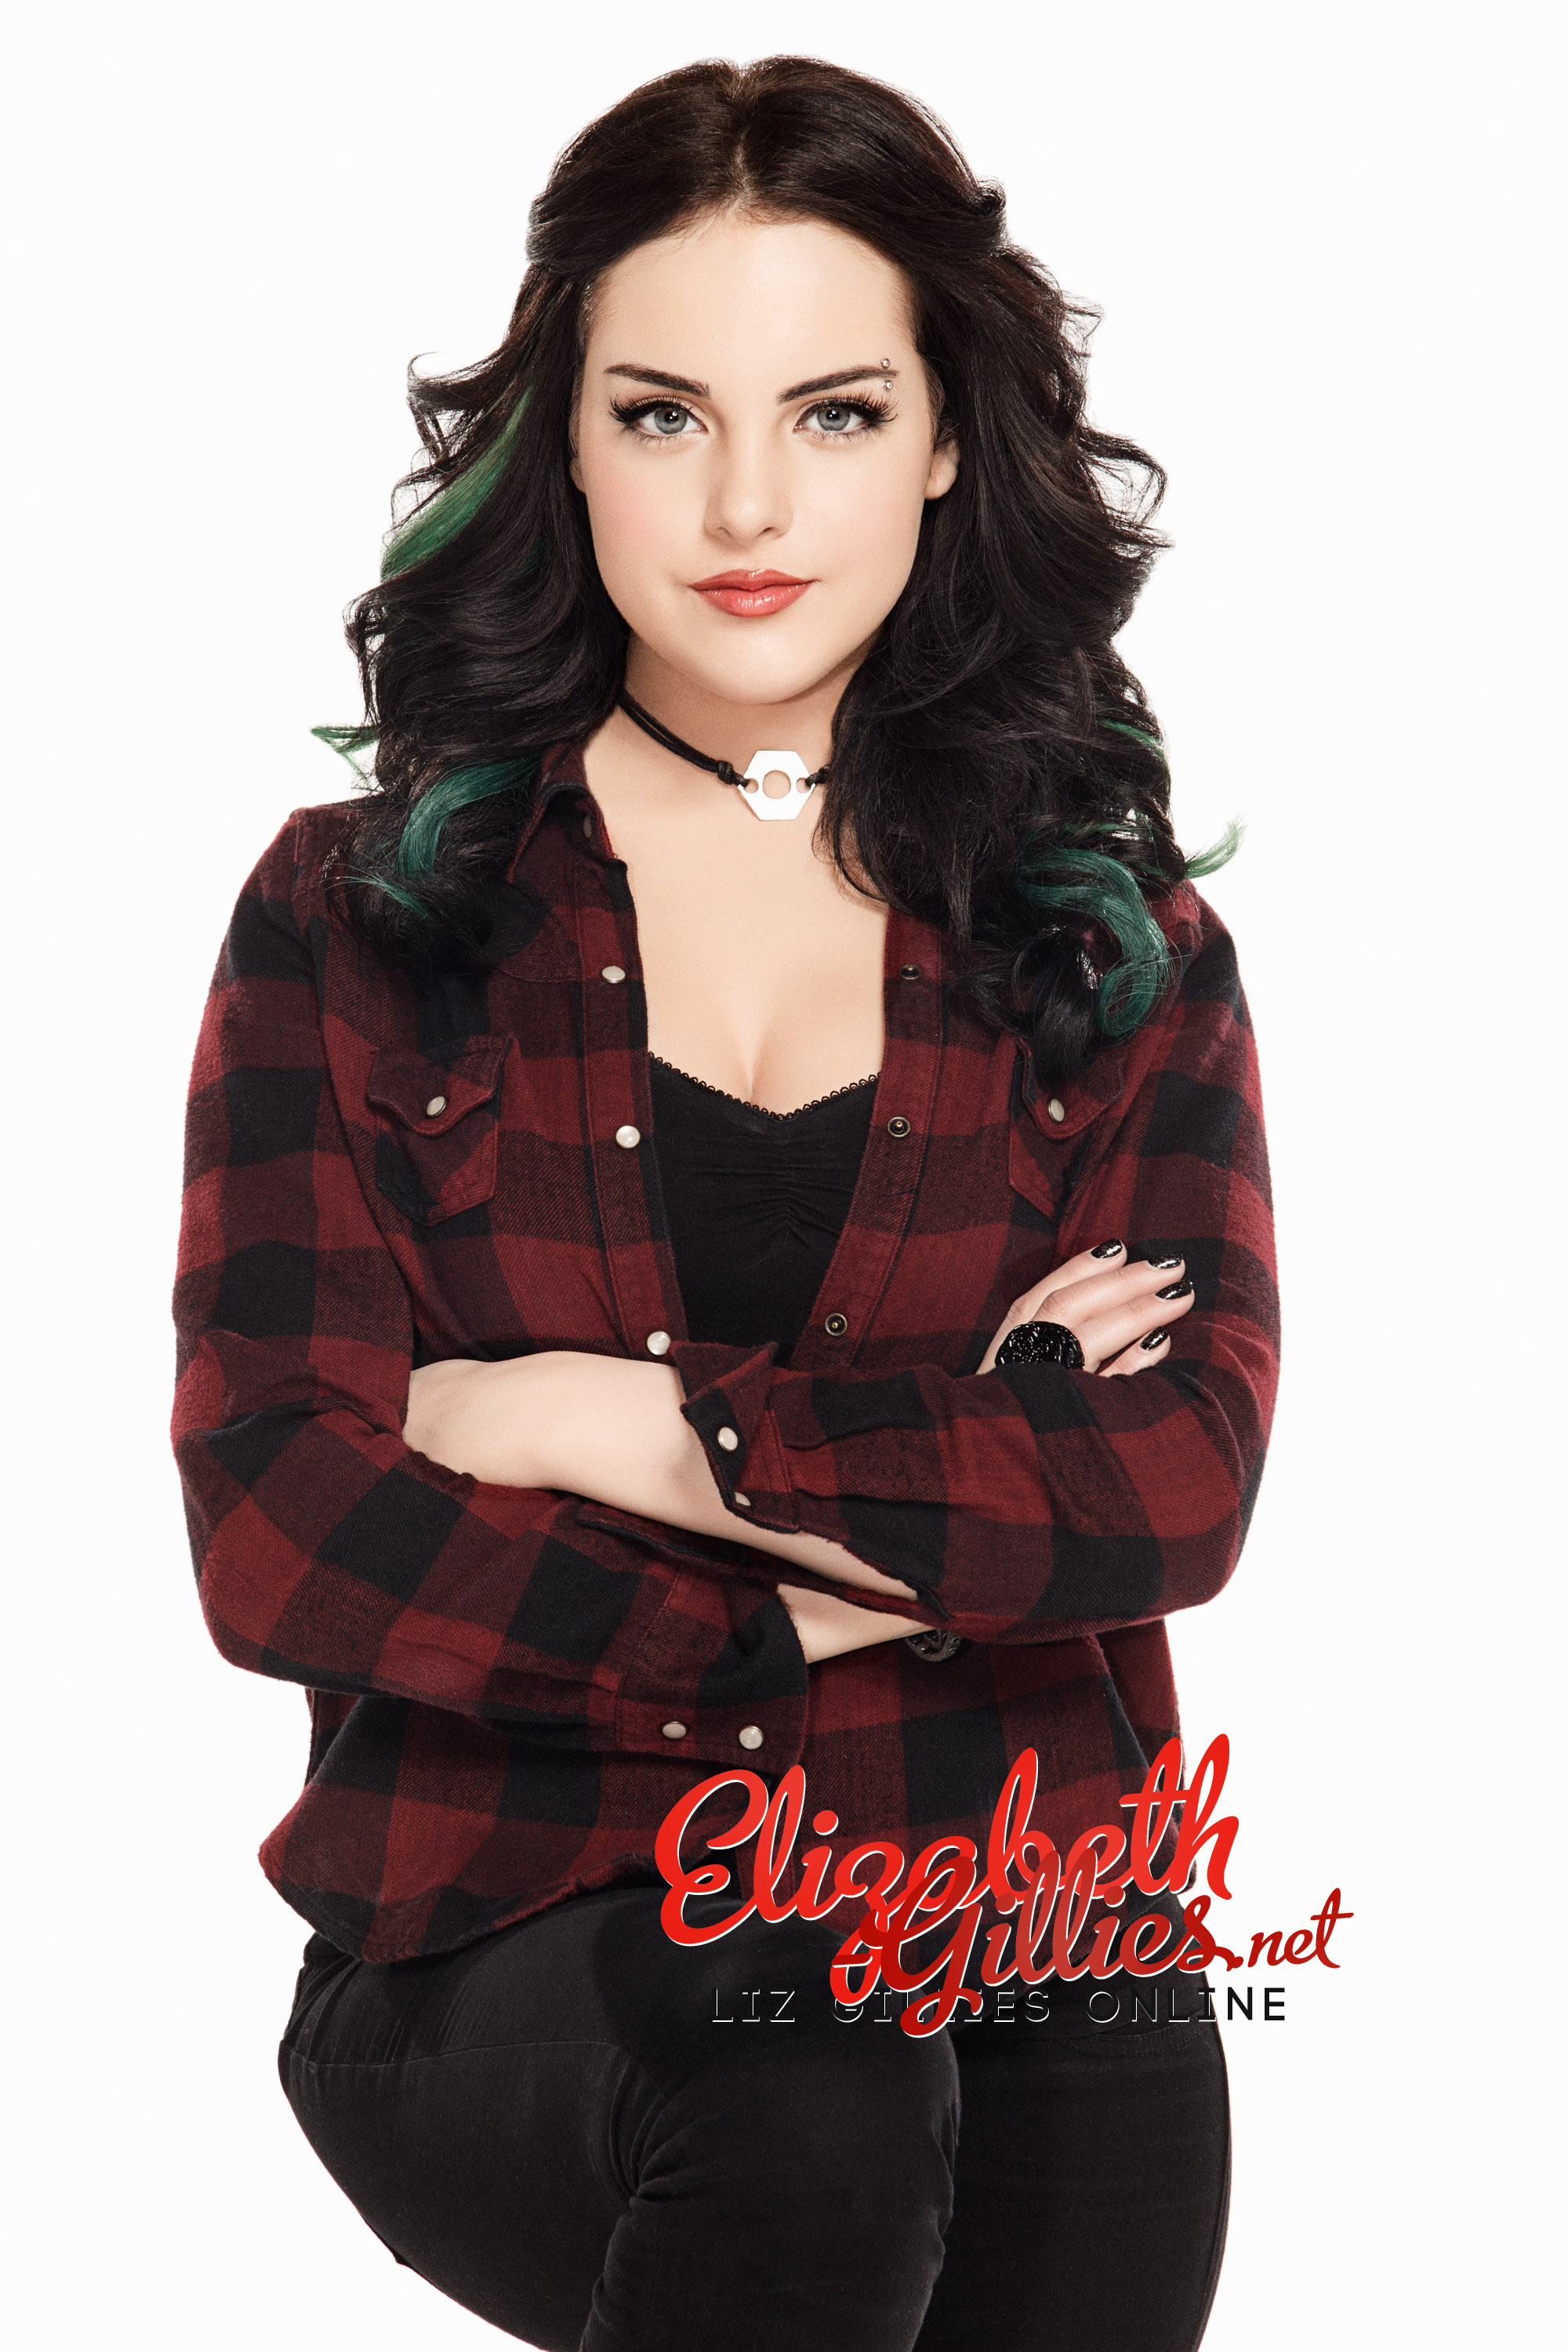 Promo Shoot for Victorious Season 3 (2012) - Elizabeth ...